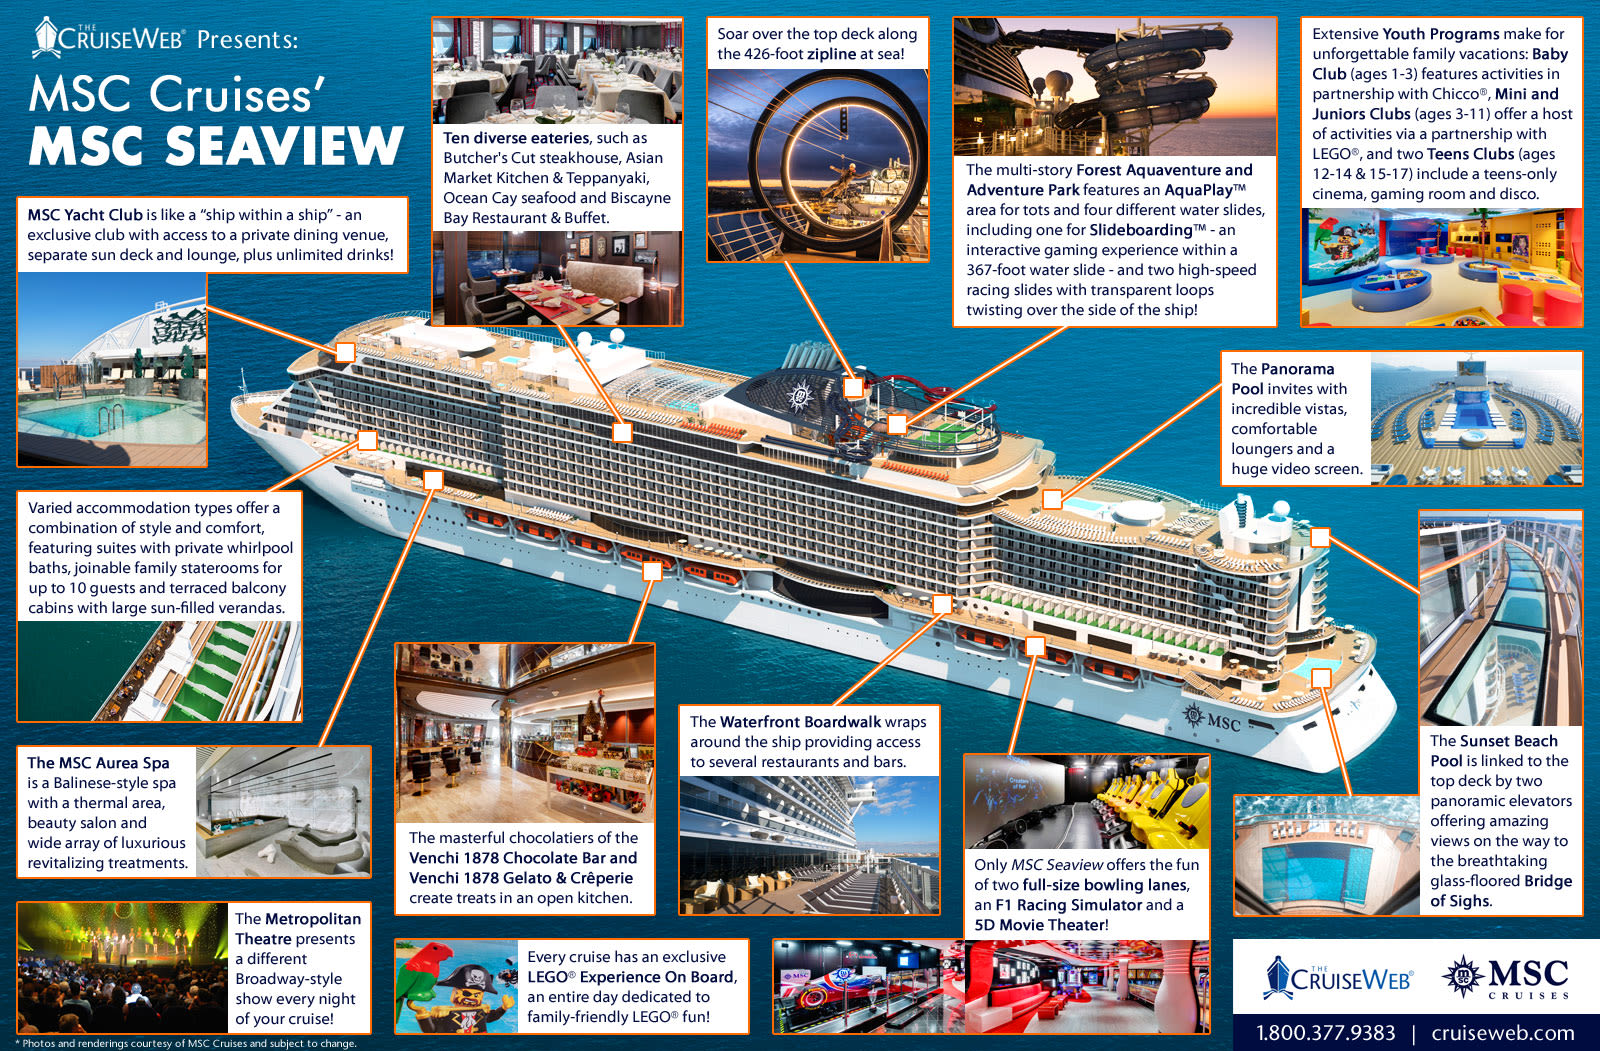 Inside MSC Seaview: A Cruise Ship Infographic